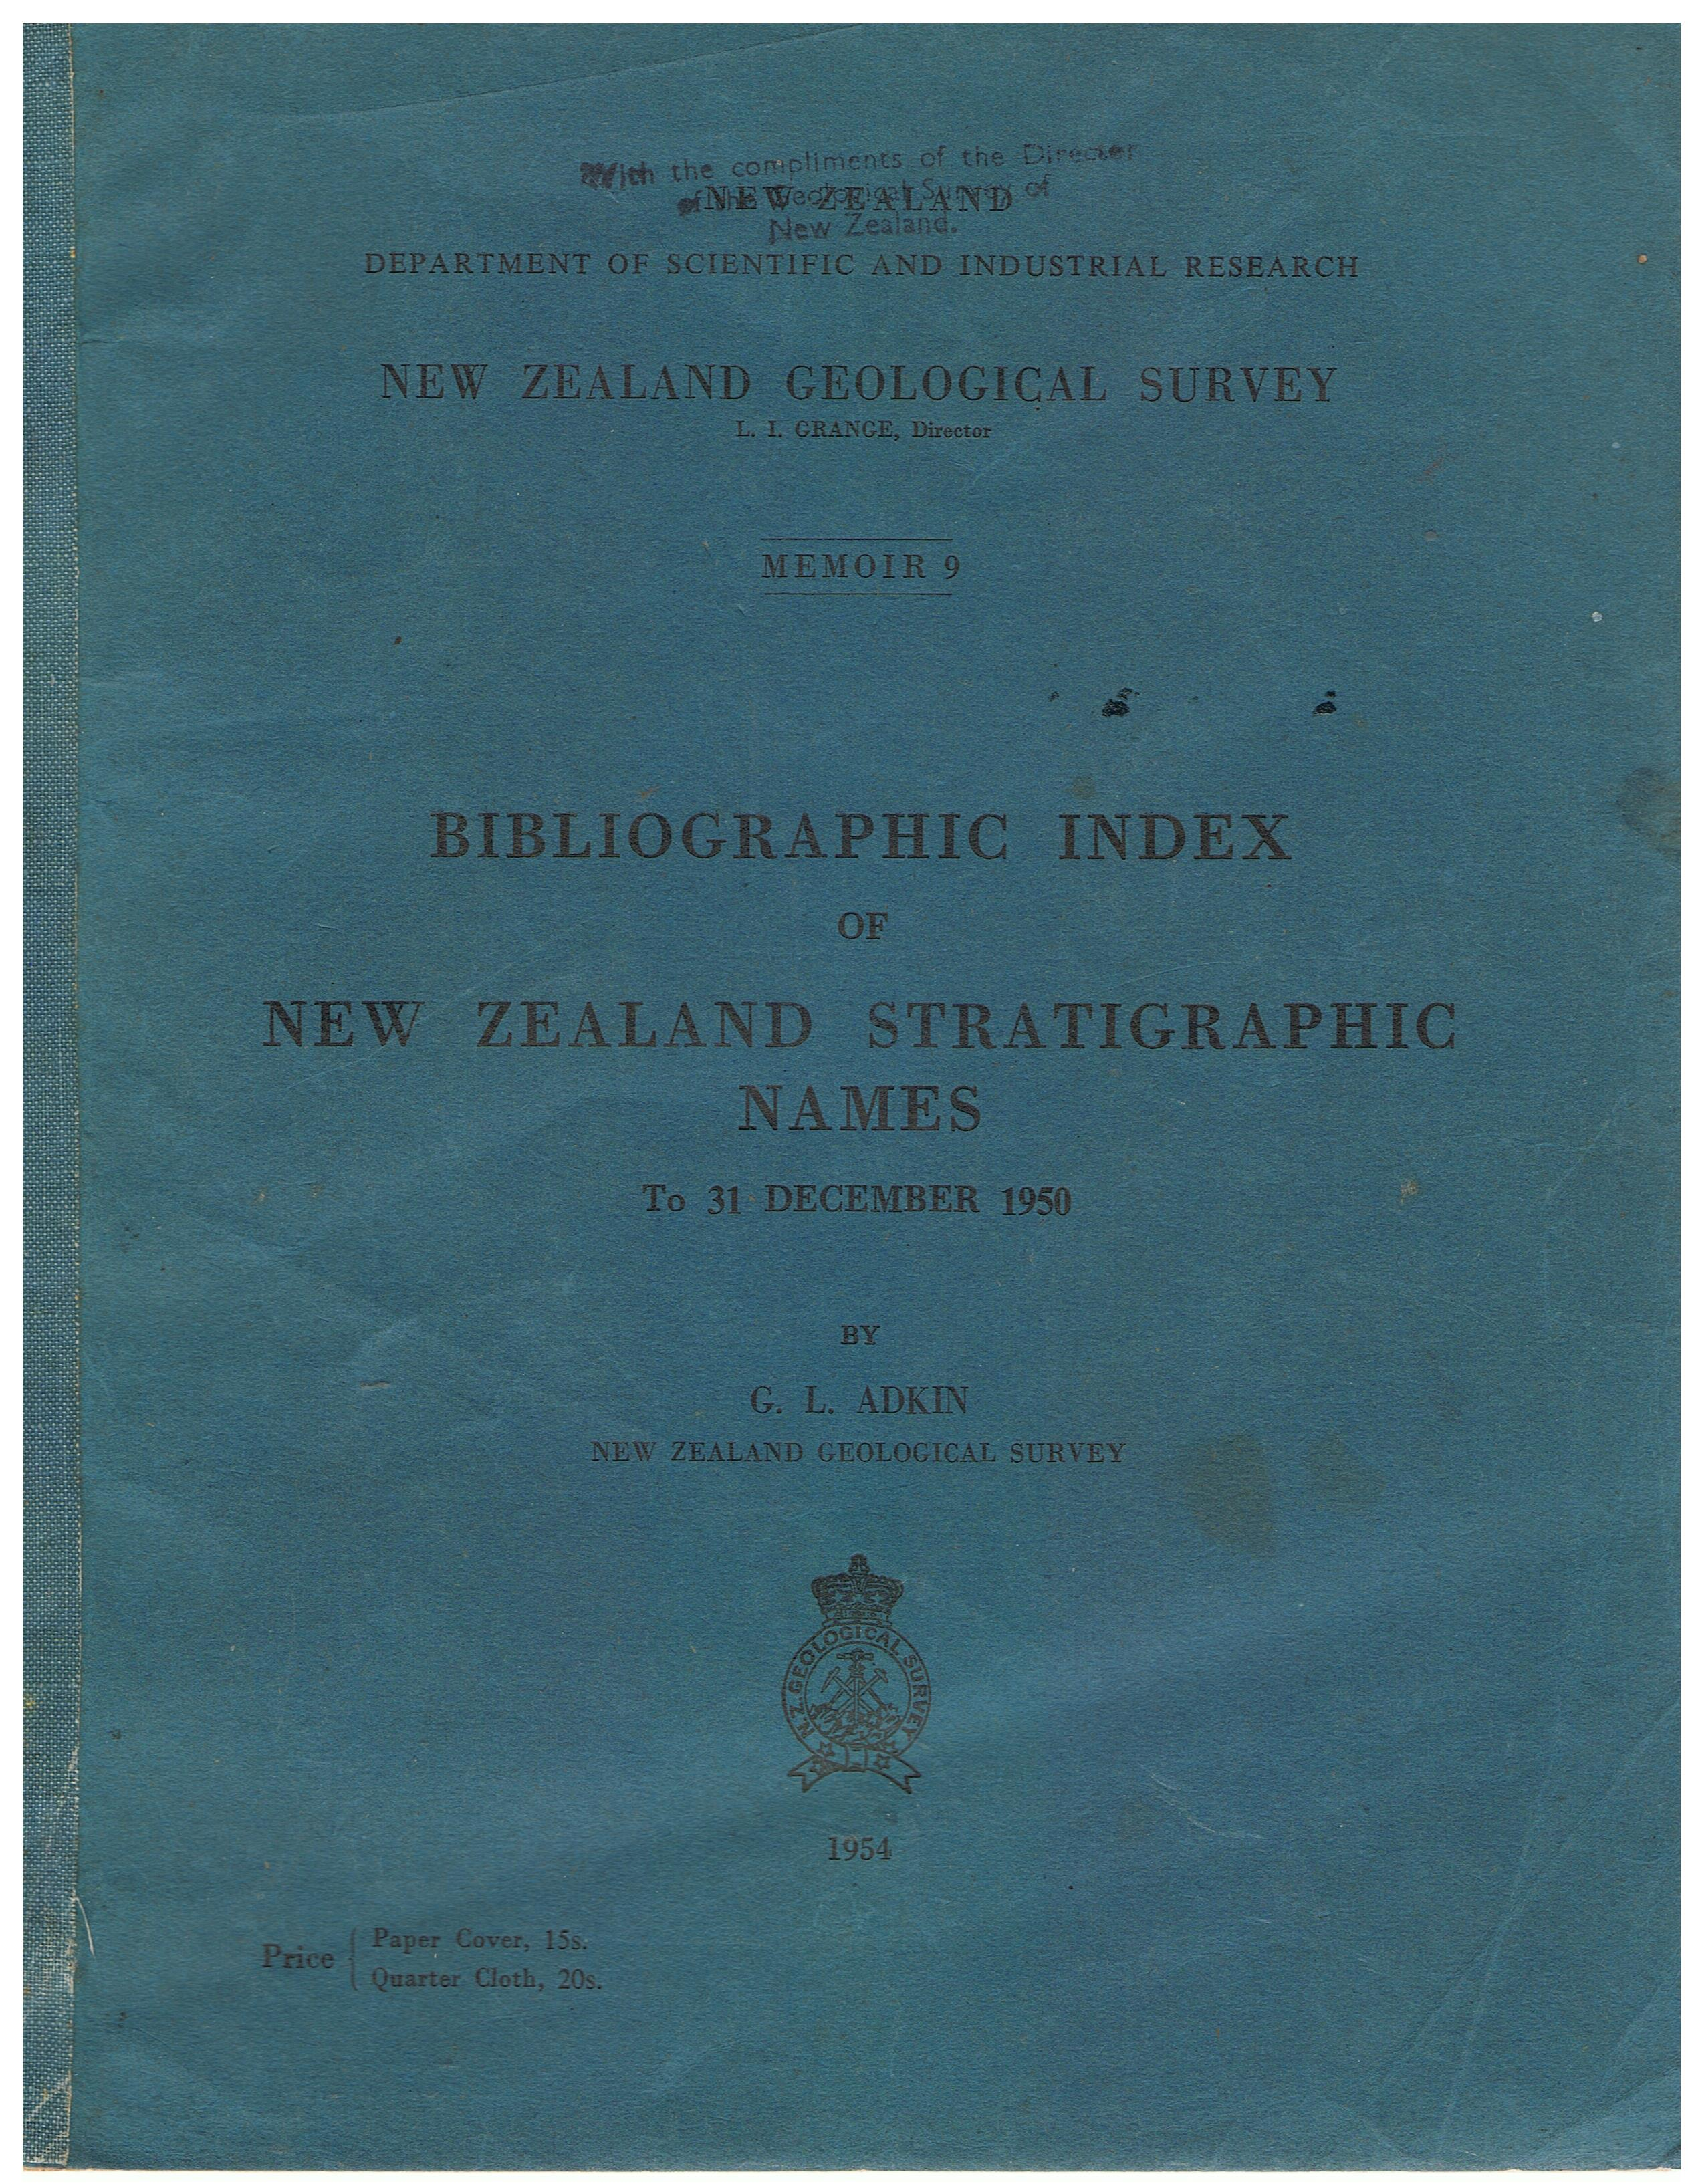 Image for Bibliographic Index of New Zealand Stratigraphic Names to 31 December 1950. (New Zealand Geological Survey Memoir 9).